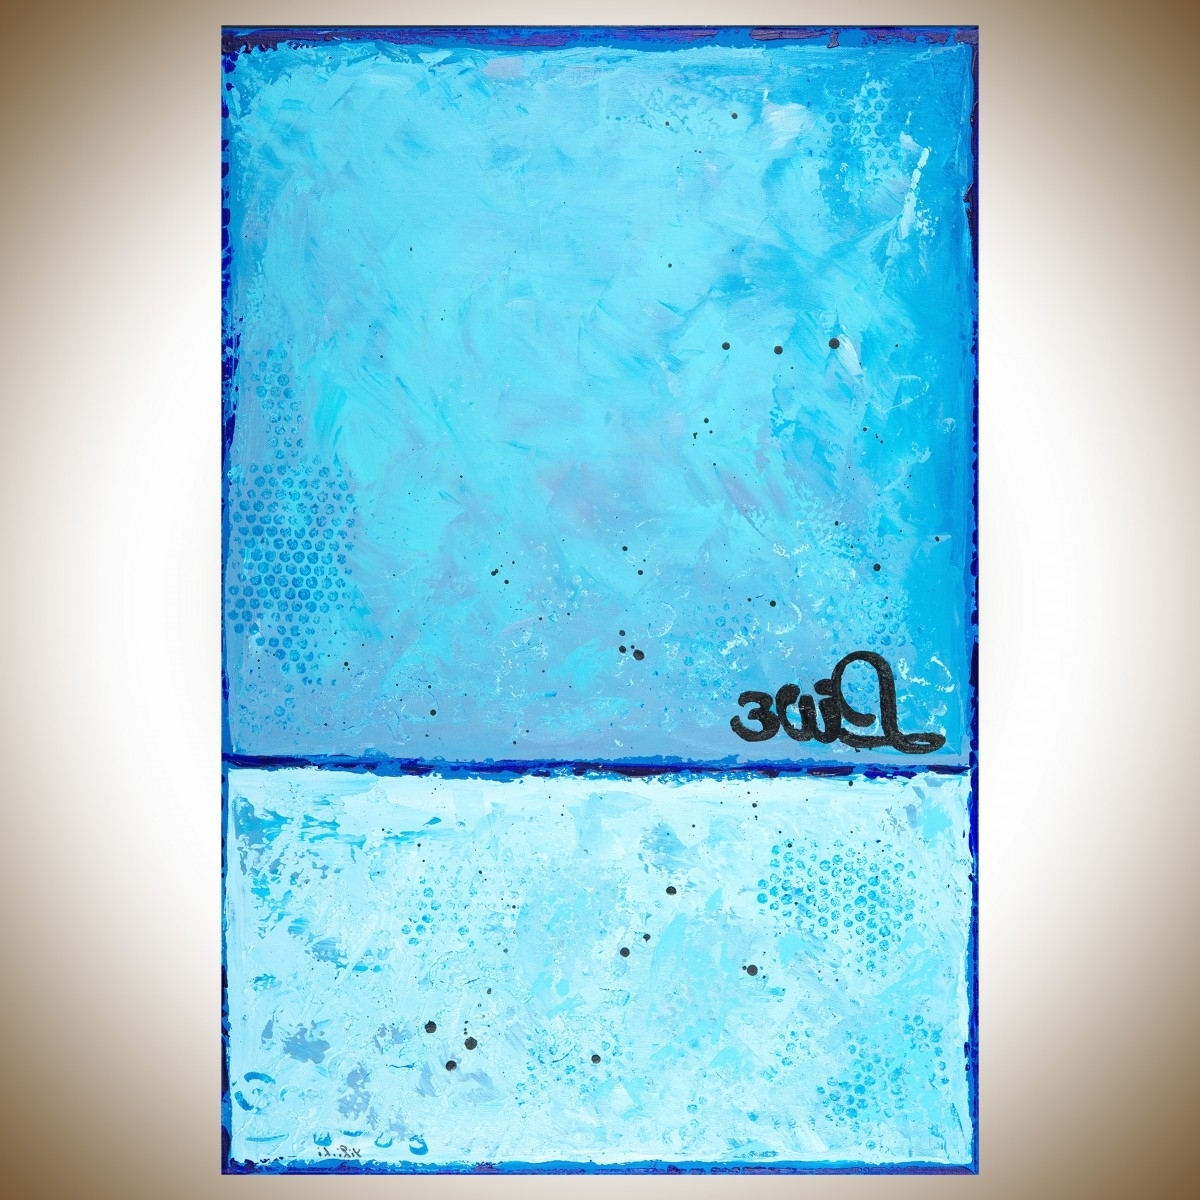 """Liveqiqigallery 36""""x24"""" Original Modern Abstract Wall Pertaining To Most Current Blue Green Abstract Wall Art (View 12 of 15)"""